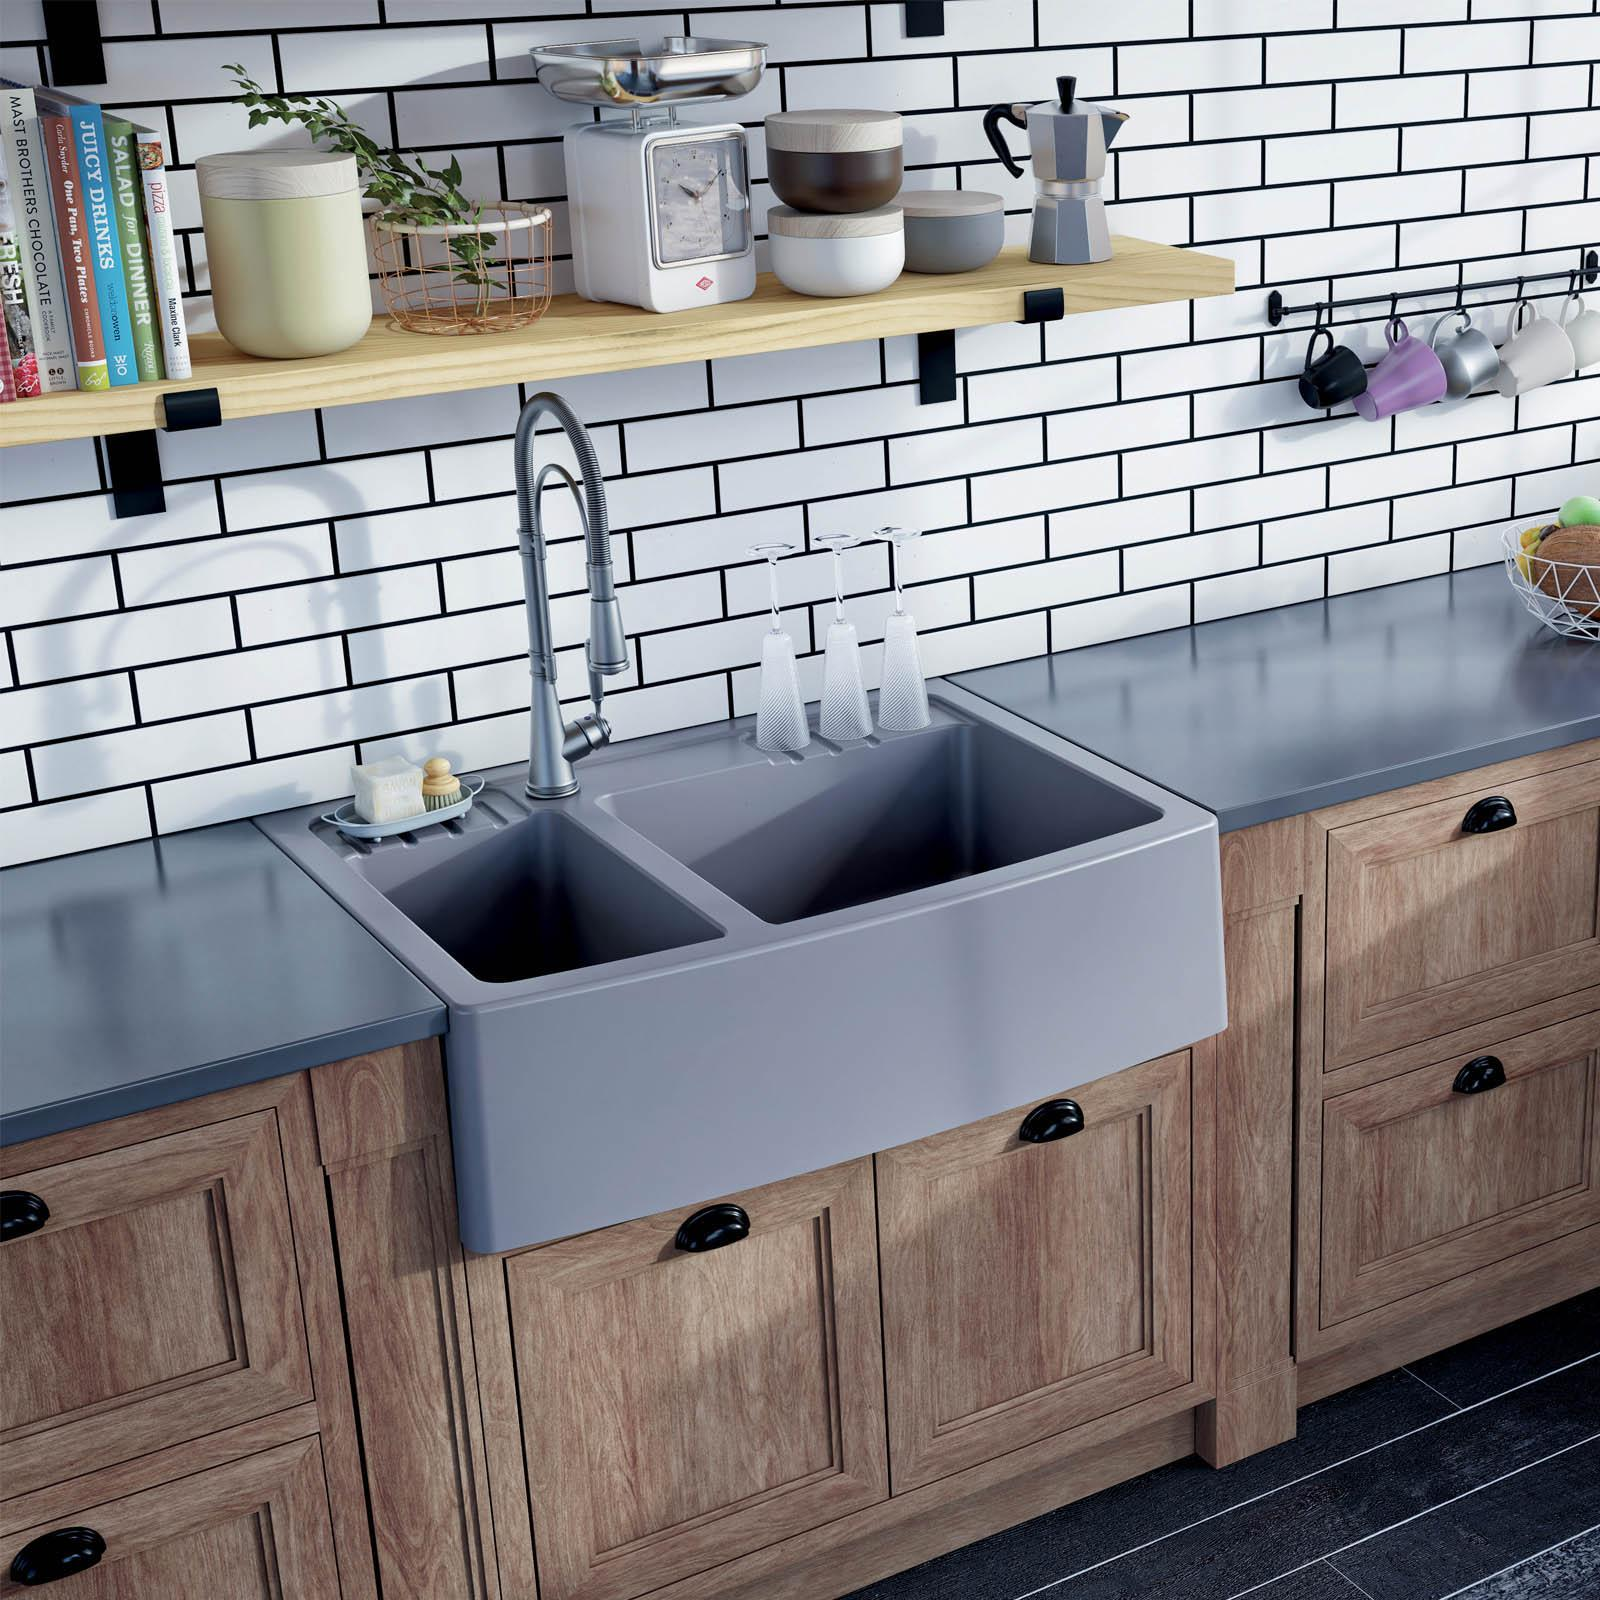 High-quality sink Clotaire III granit titanium - one and a half bowl - ambience